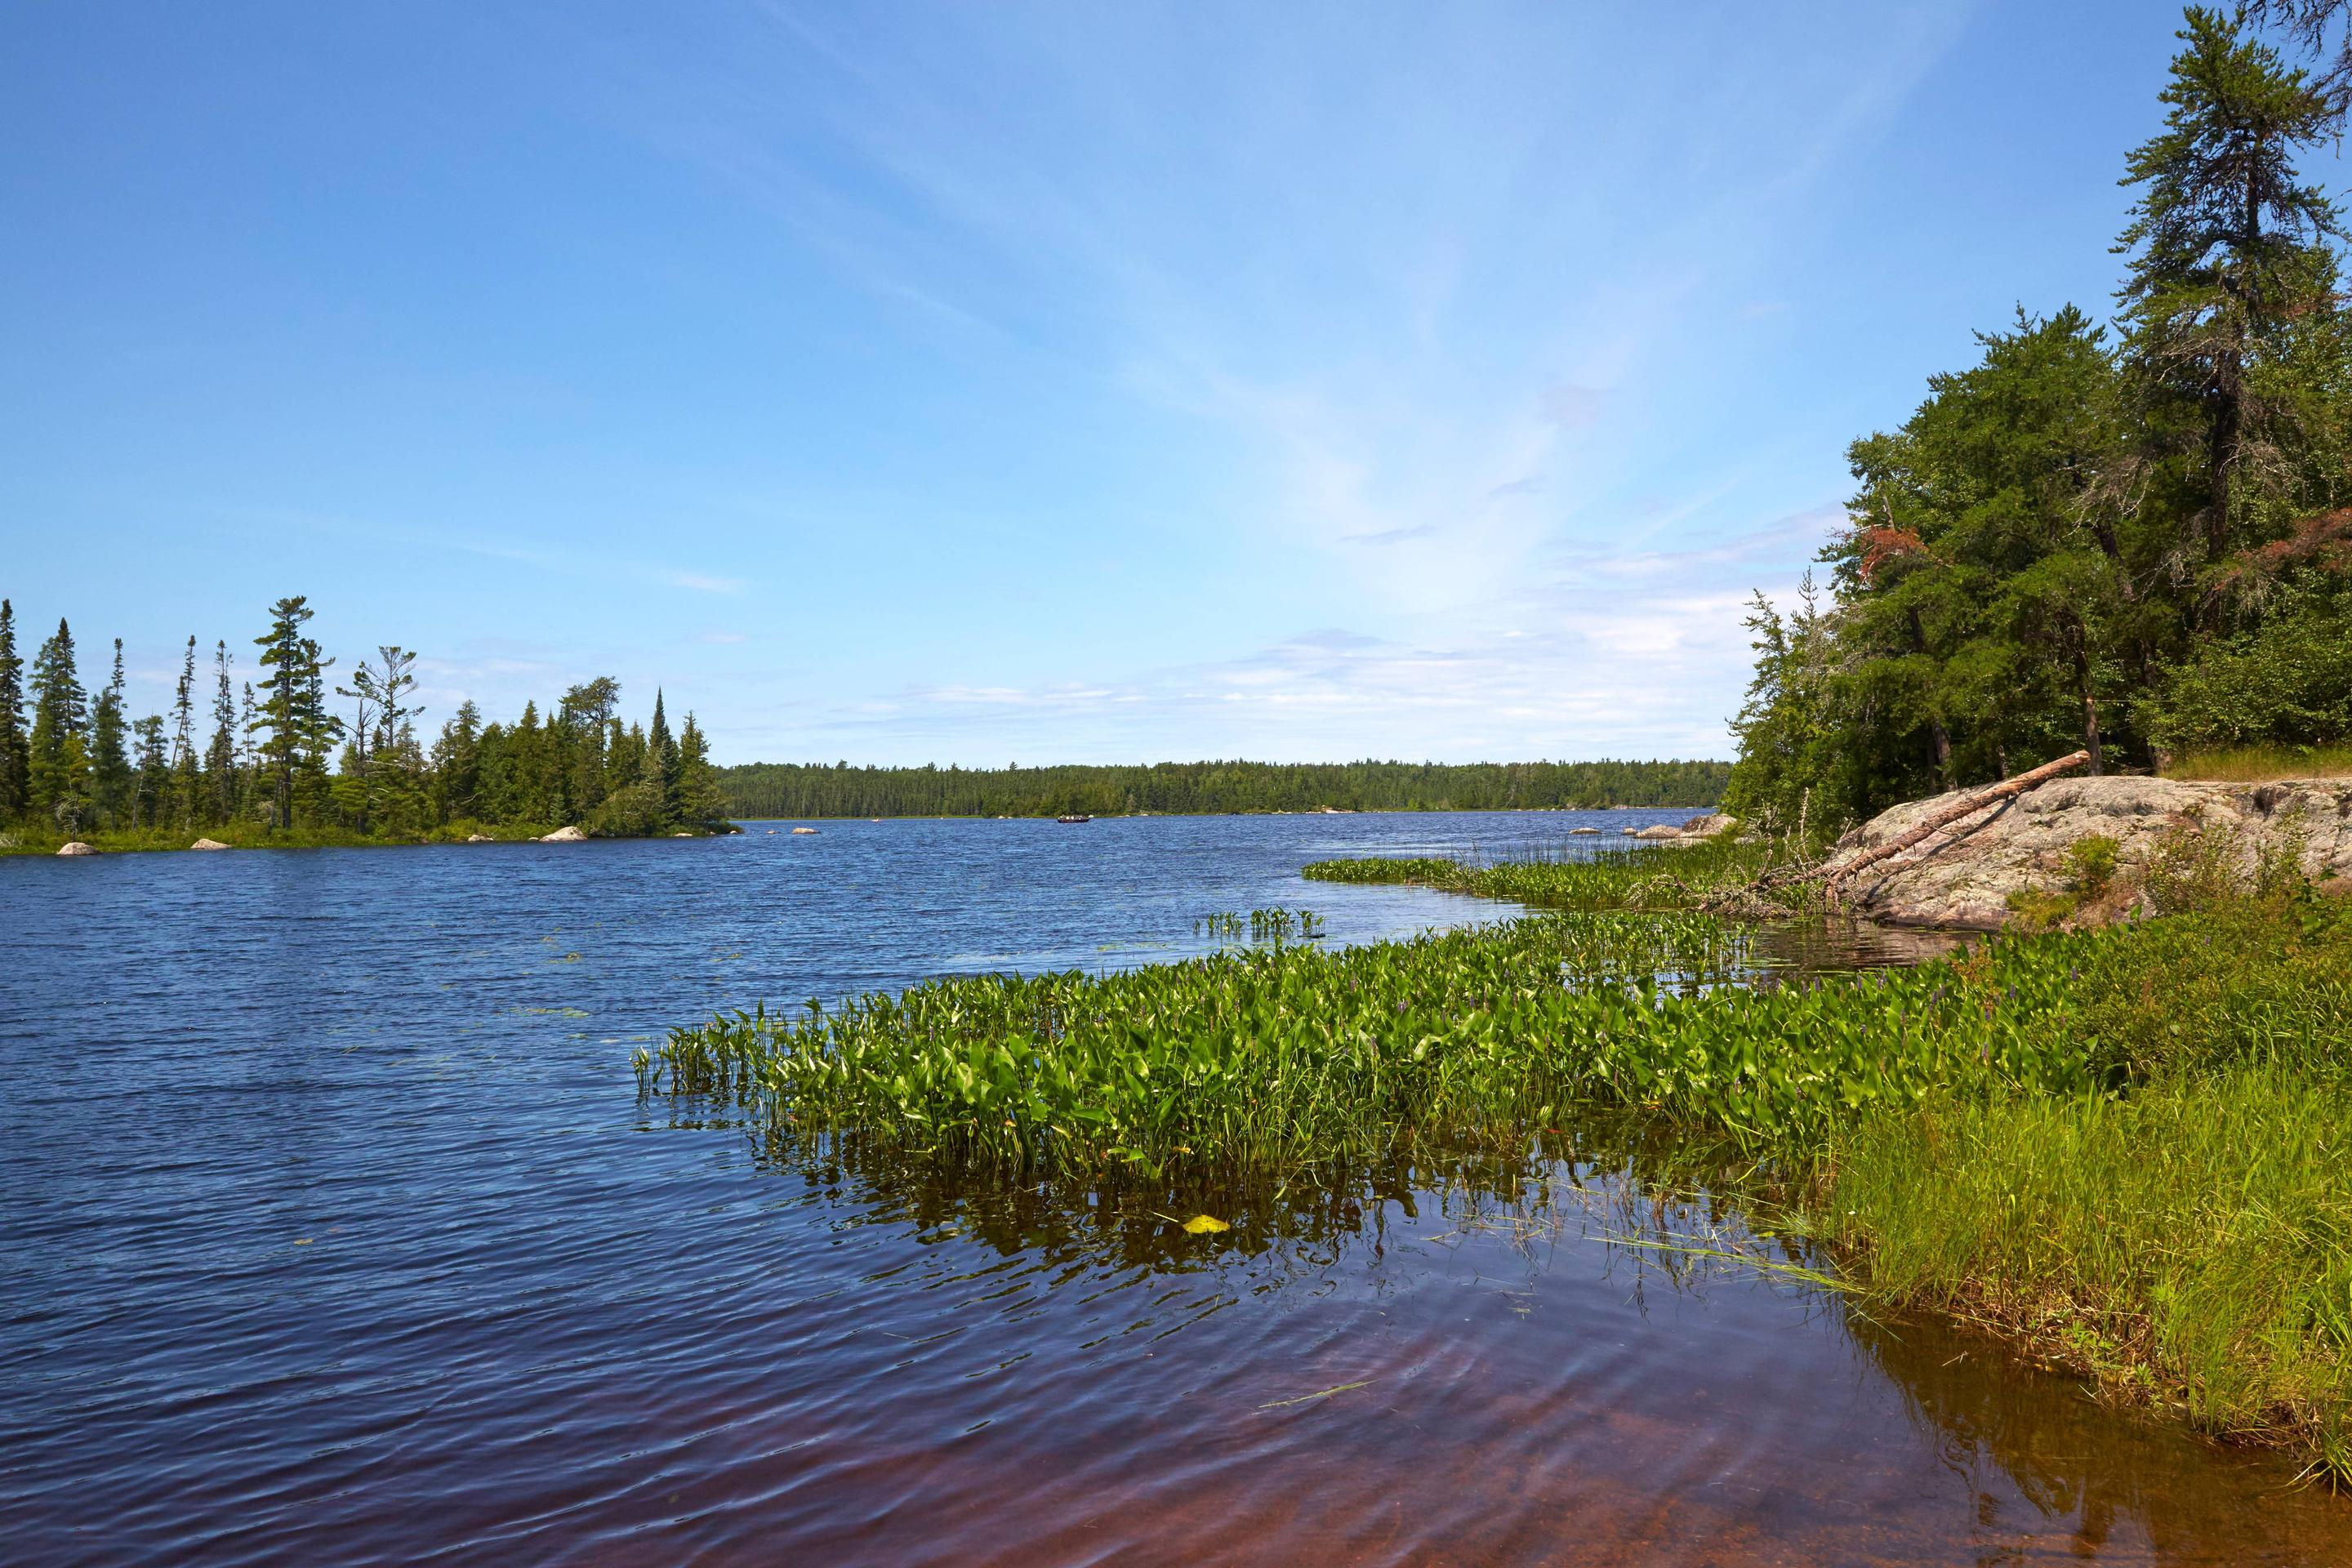 View of Lake Jeanette